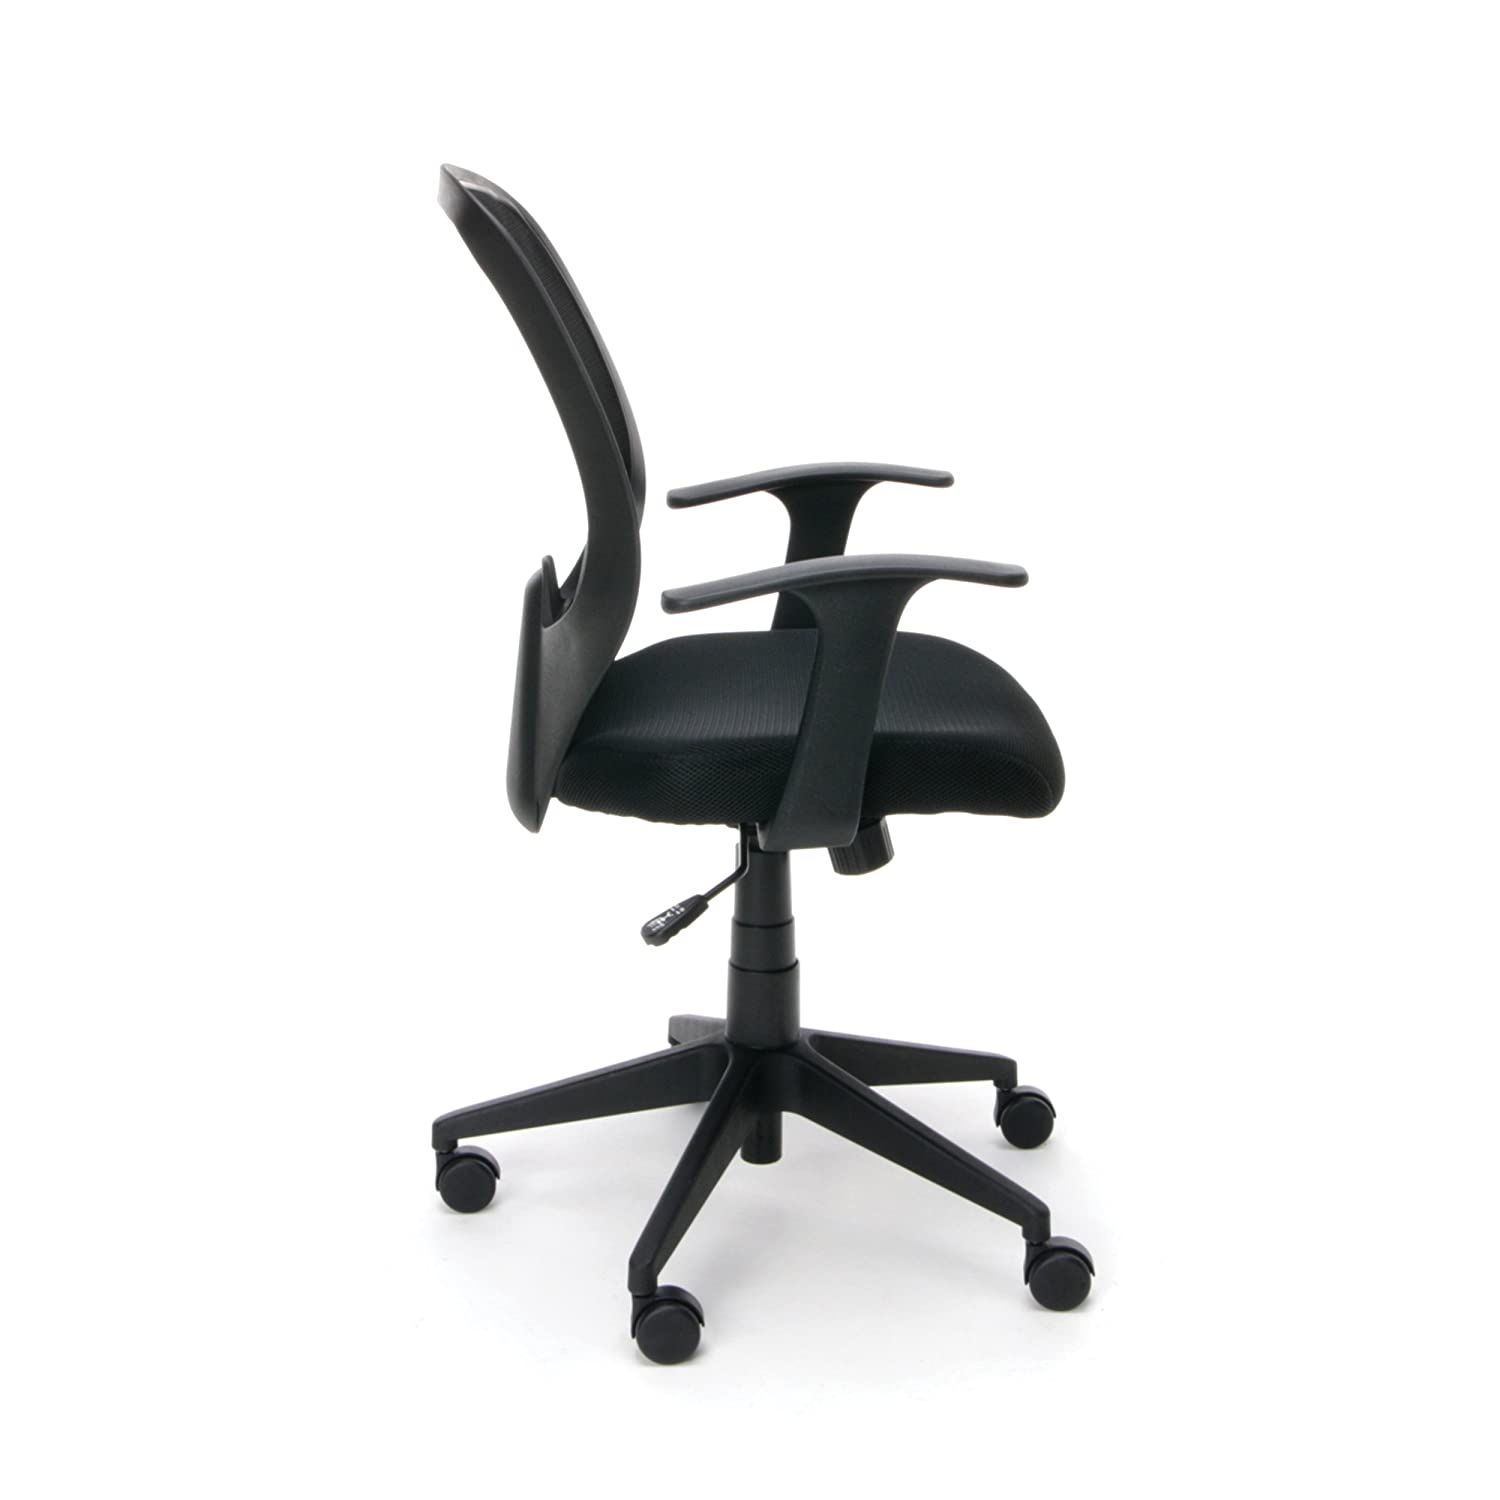 Amazon Essentials by OFM Mesh Swivel Task Chair with Arms